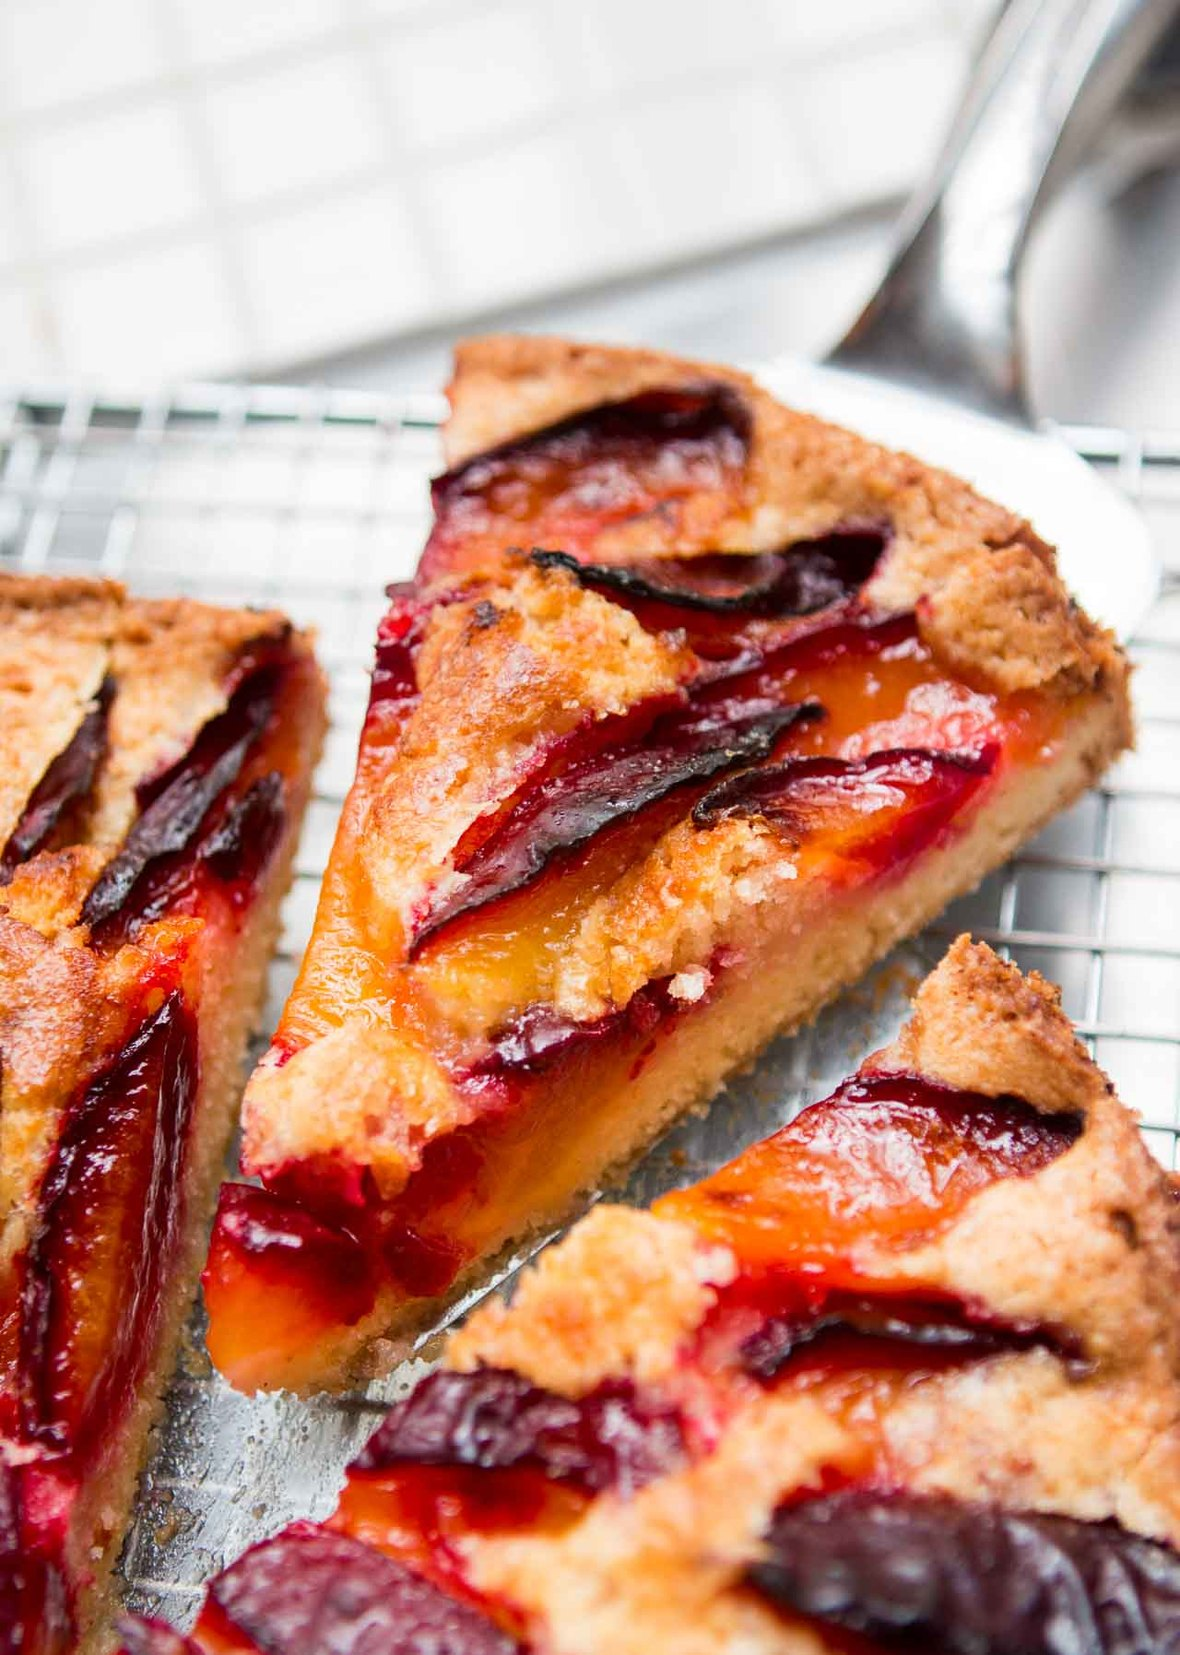 Moelleux apricot plum cake summer french dessert recipe fruits fruit-8